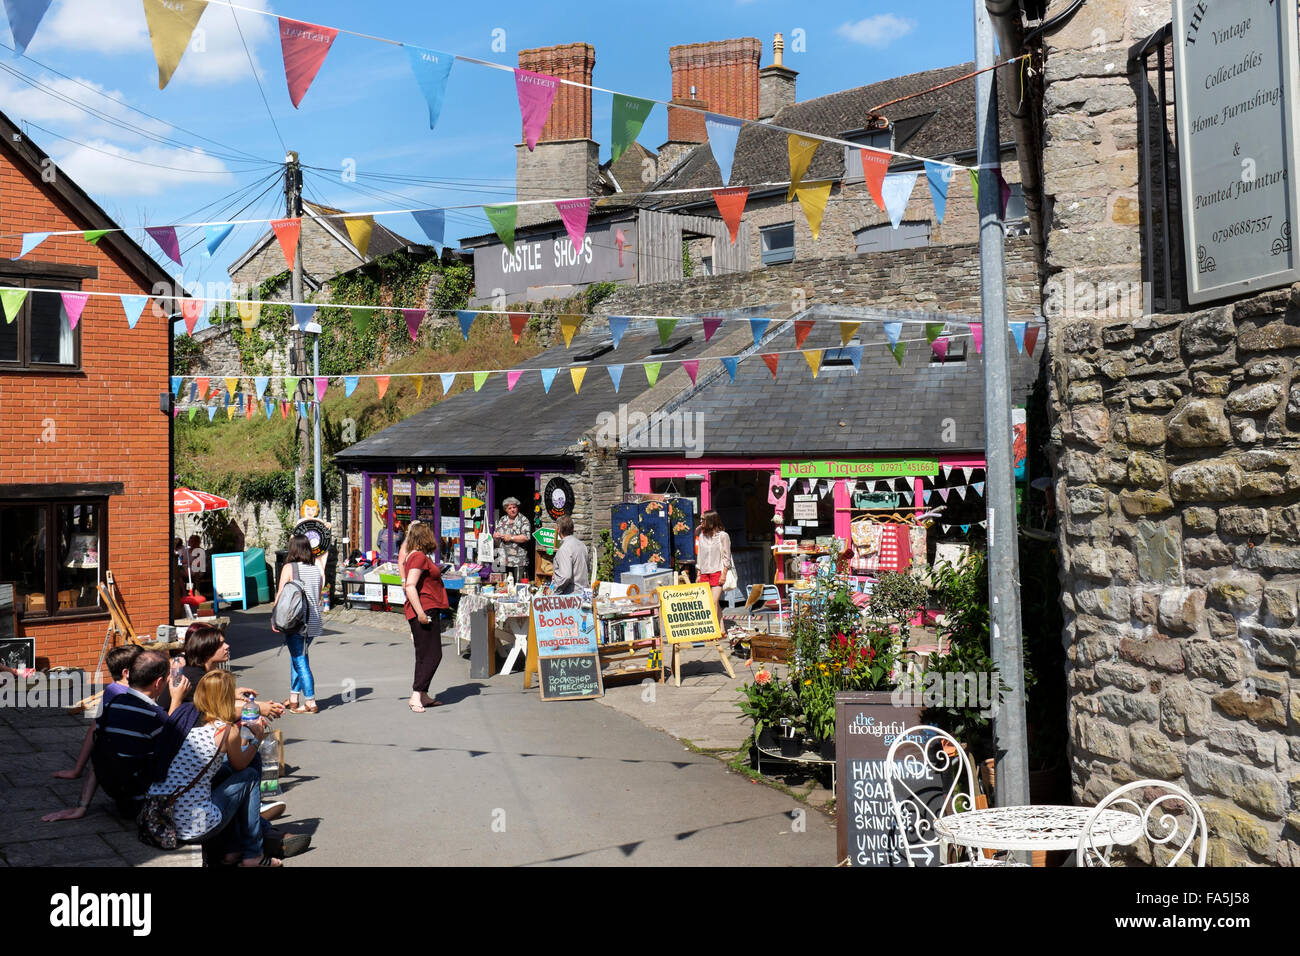 Bookshops and antique shops in Hay-on-Wye, Powys, Wales: town of books. - Stock Image